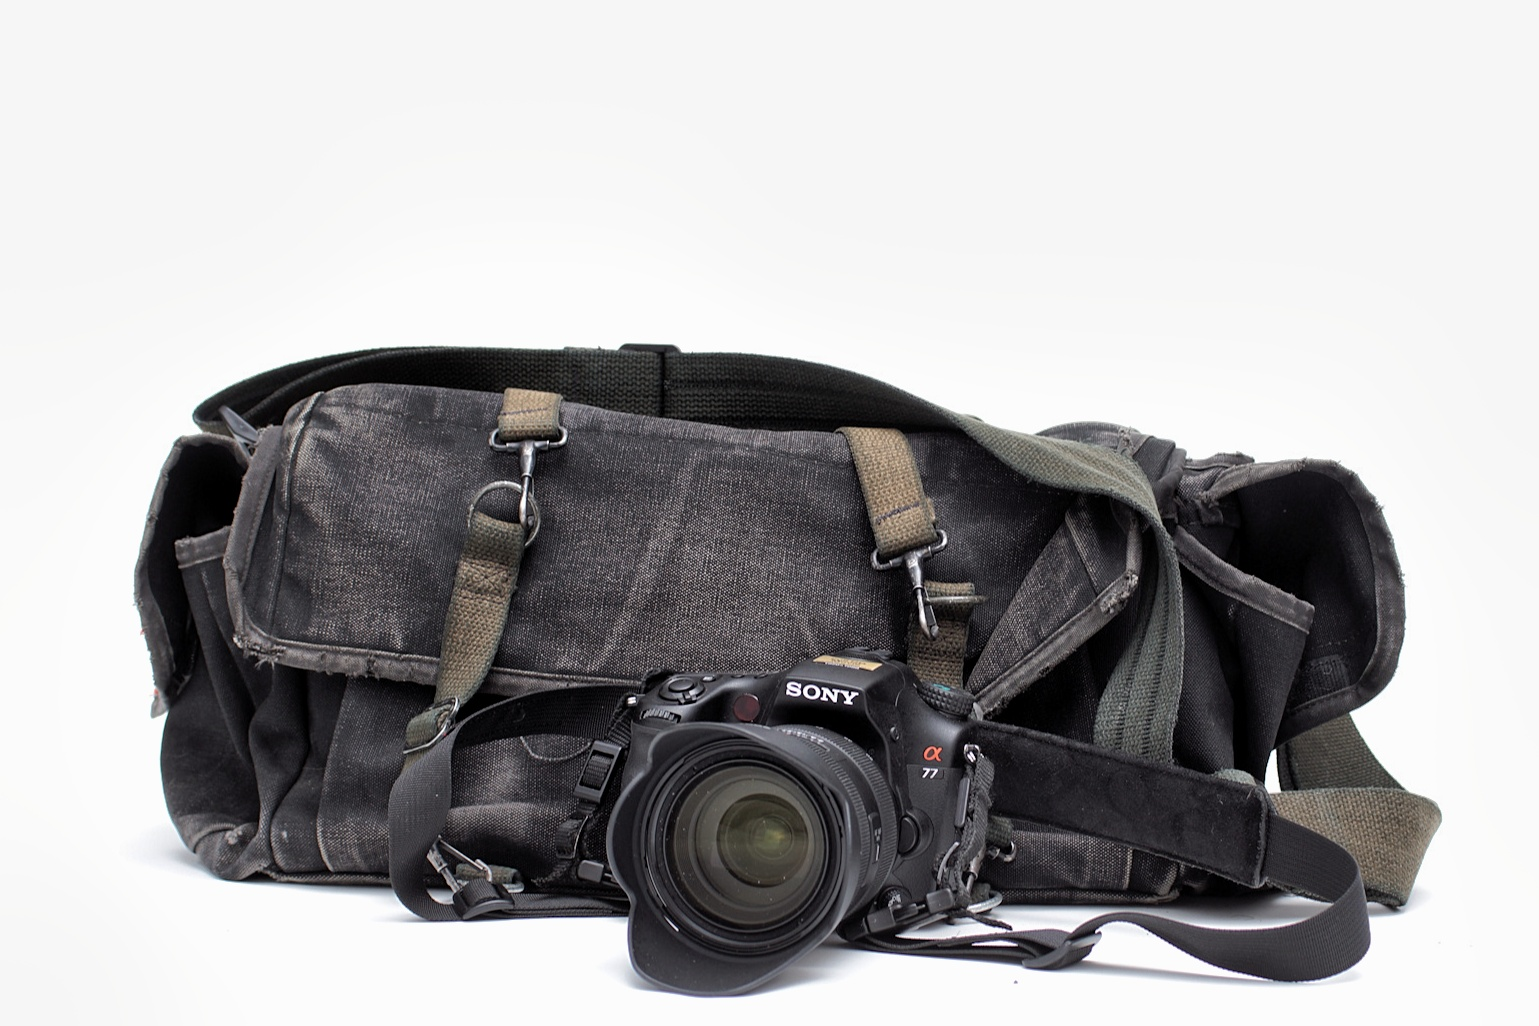 Best Dslr For Travel